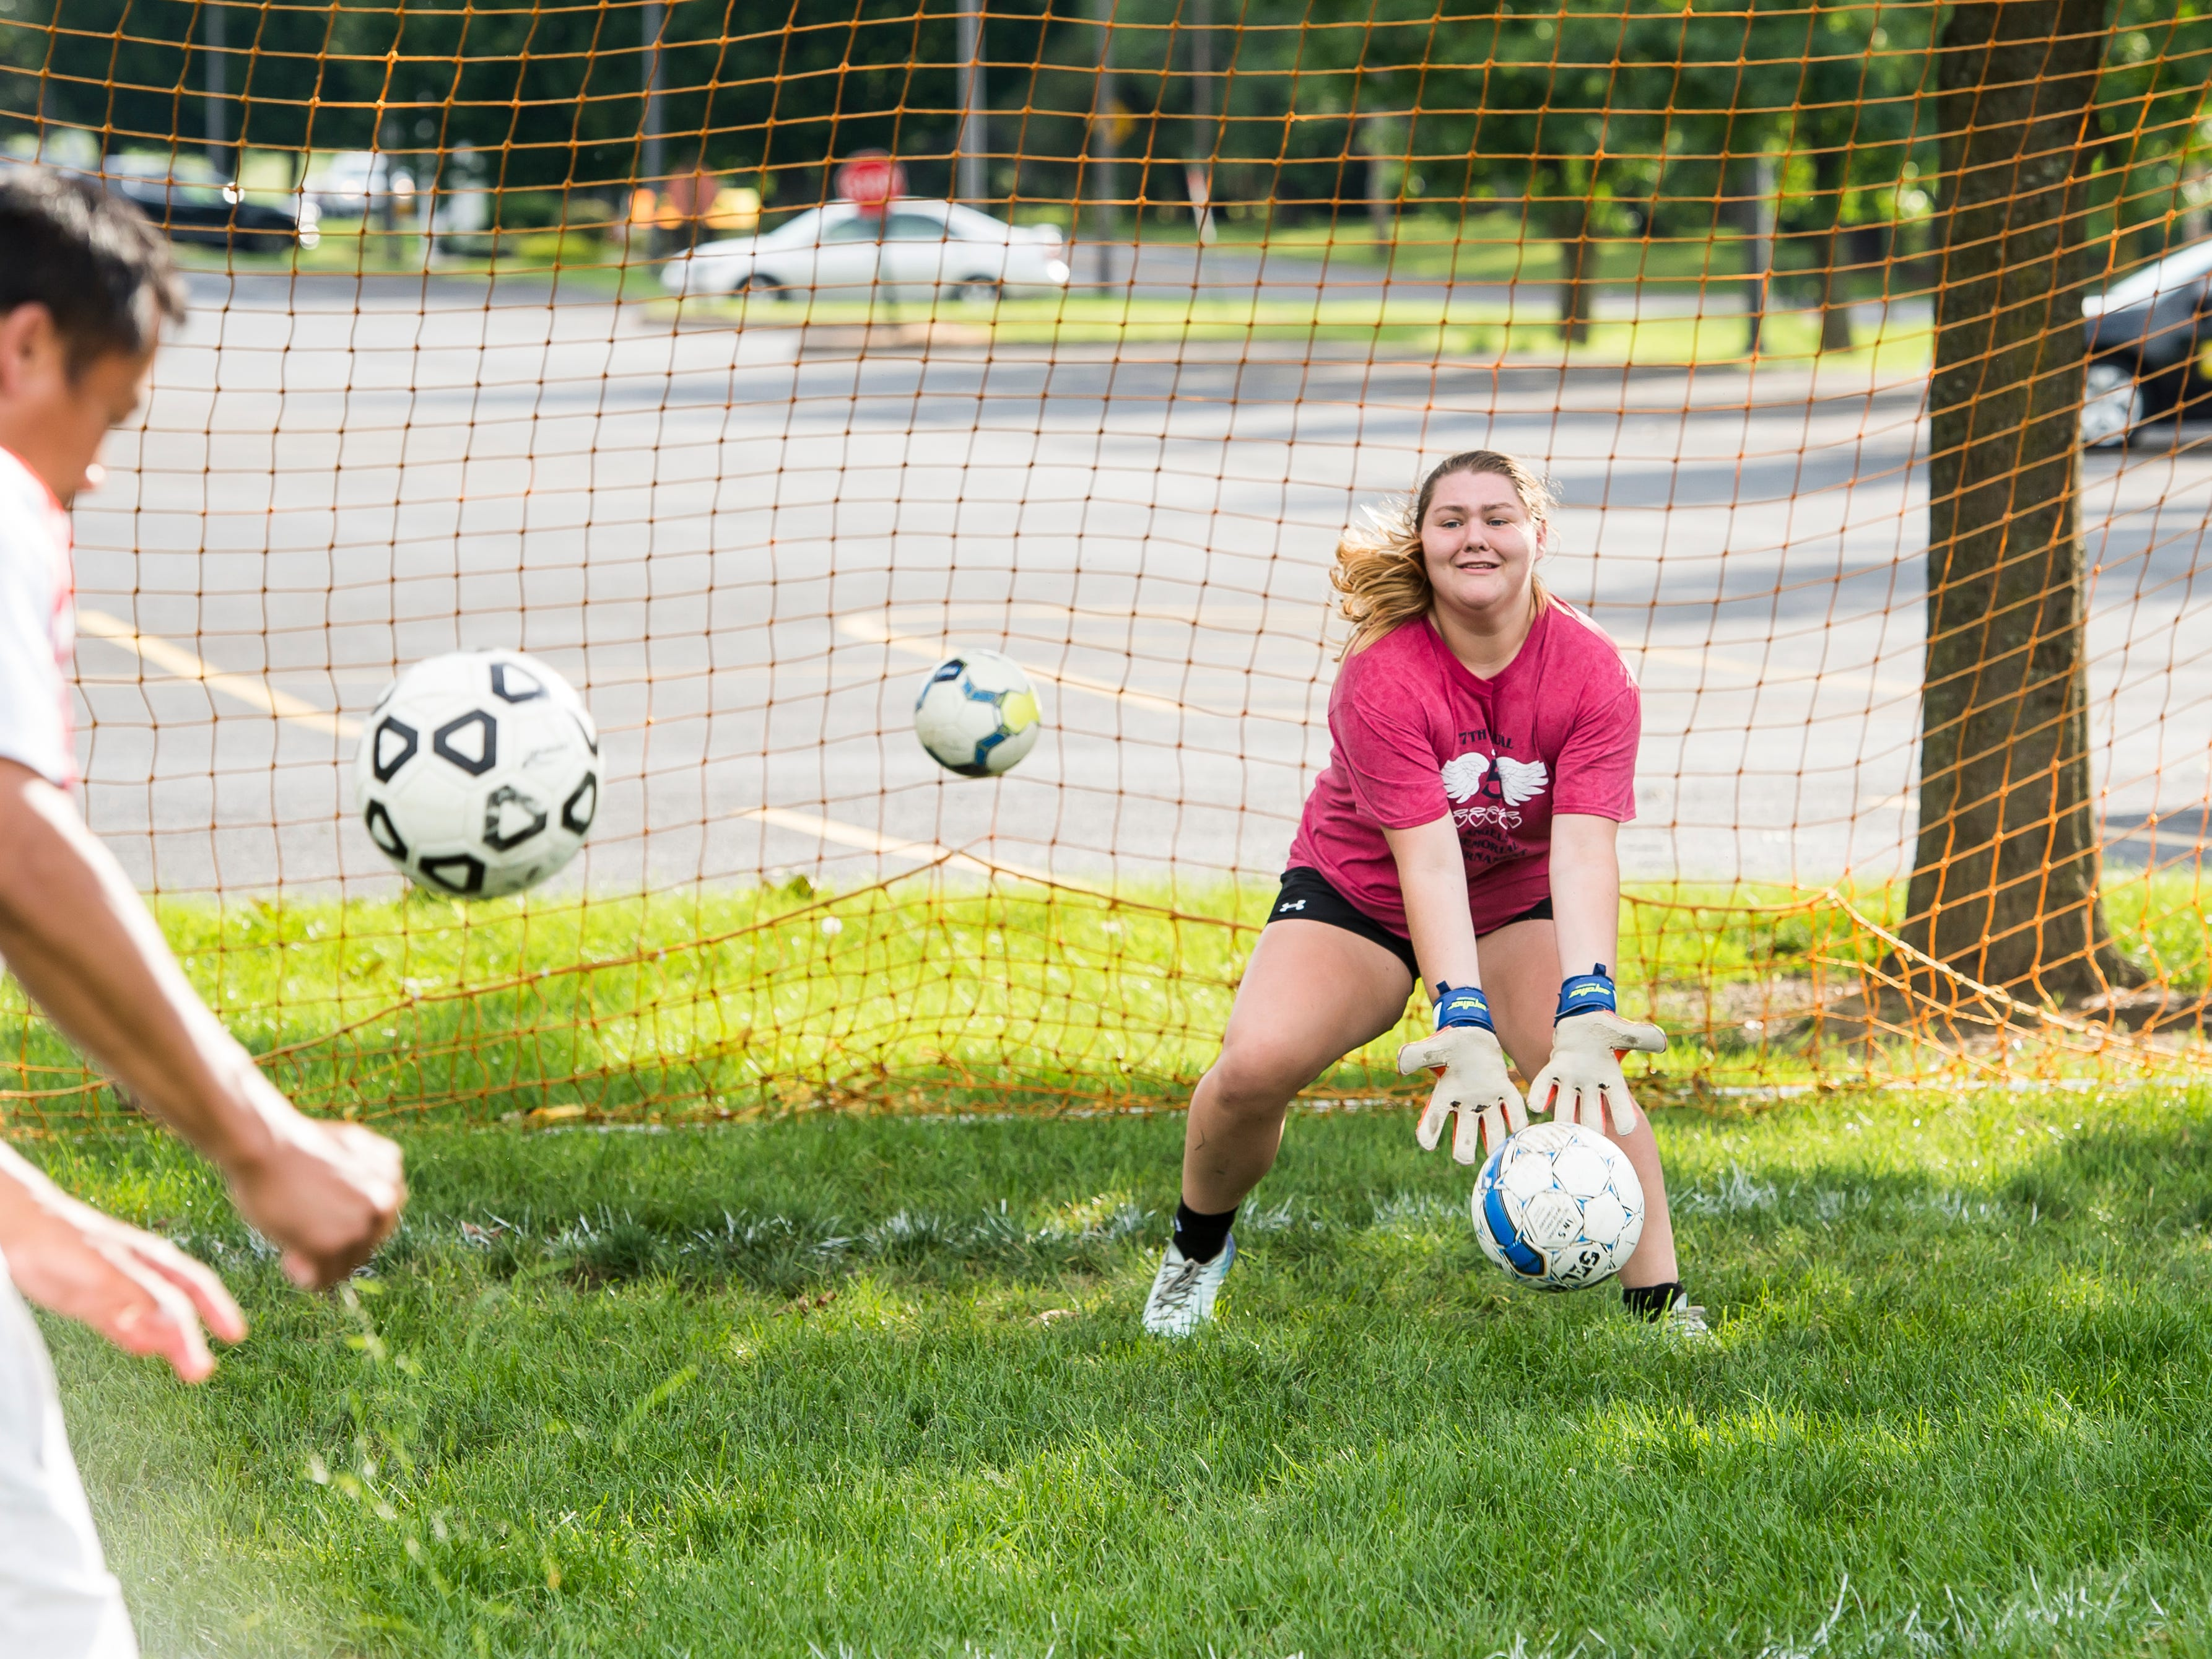 Fairfield goalkeeper Taylor Scott blocks a shot during a rapid fire drill during practice on Monday, August 13, 2018.